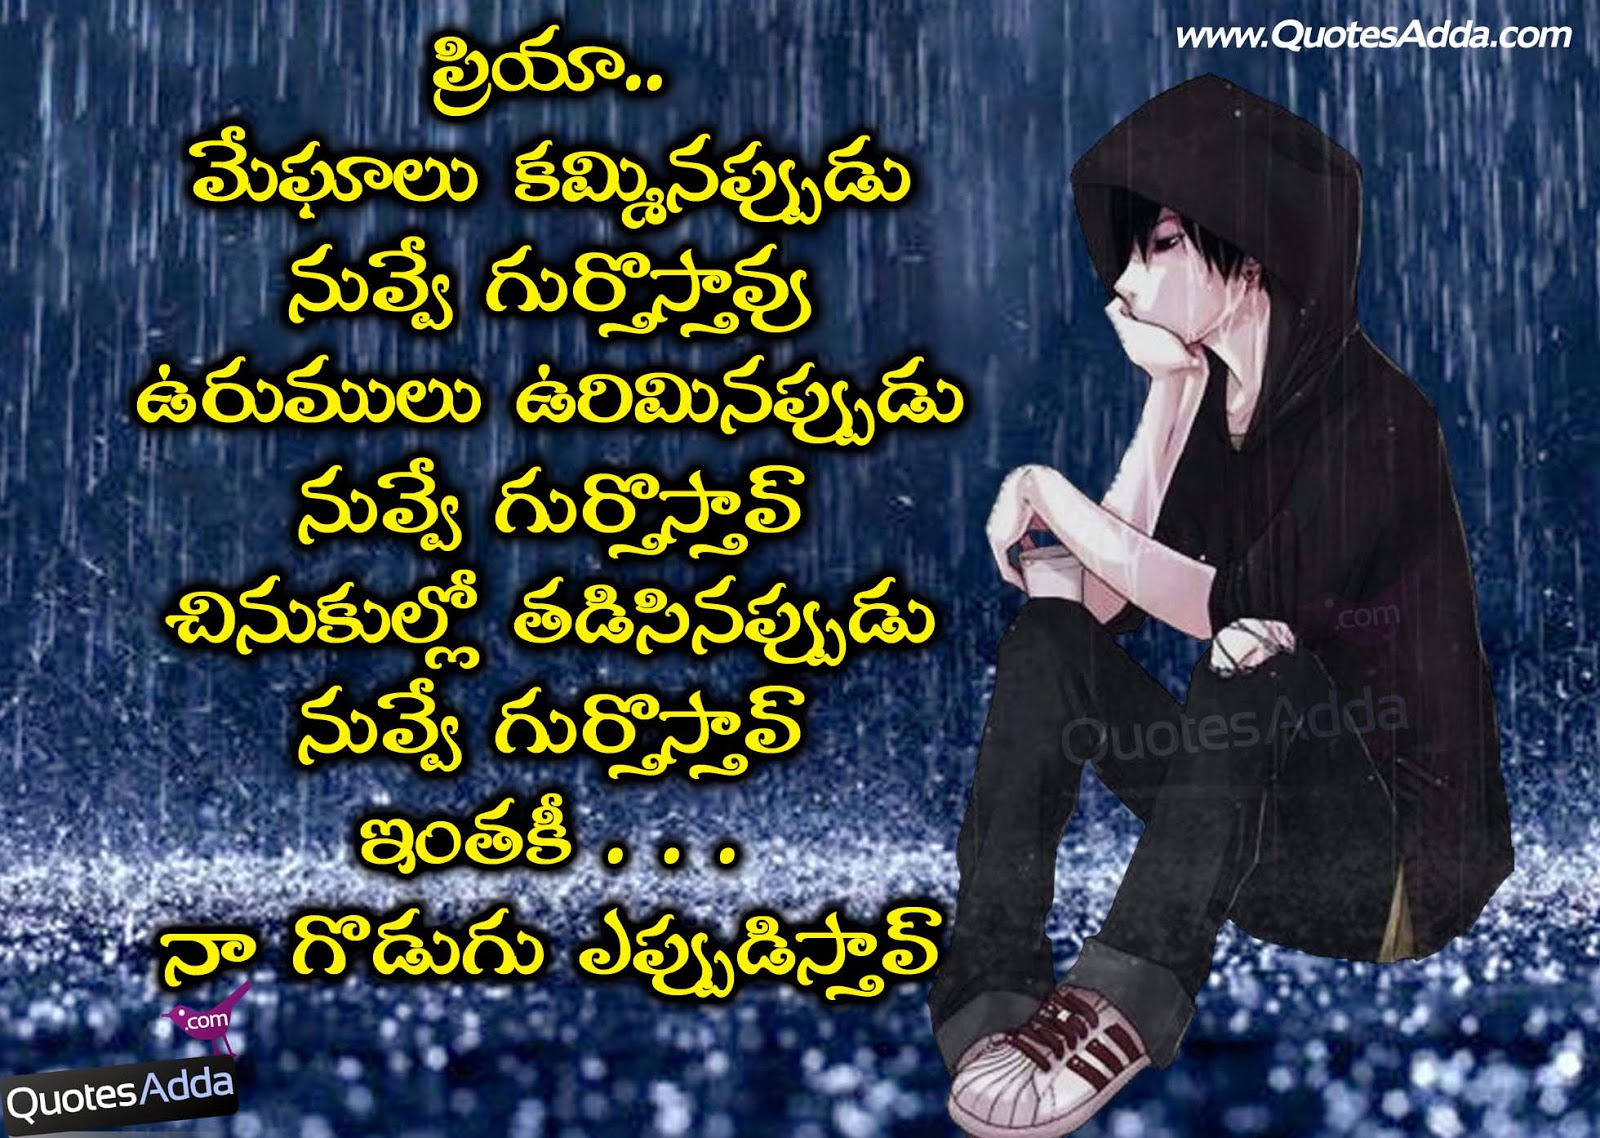 Telugu Funny Quotes on Girls QuotesAdda.com Telugu Quotes Tamil ...